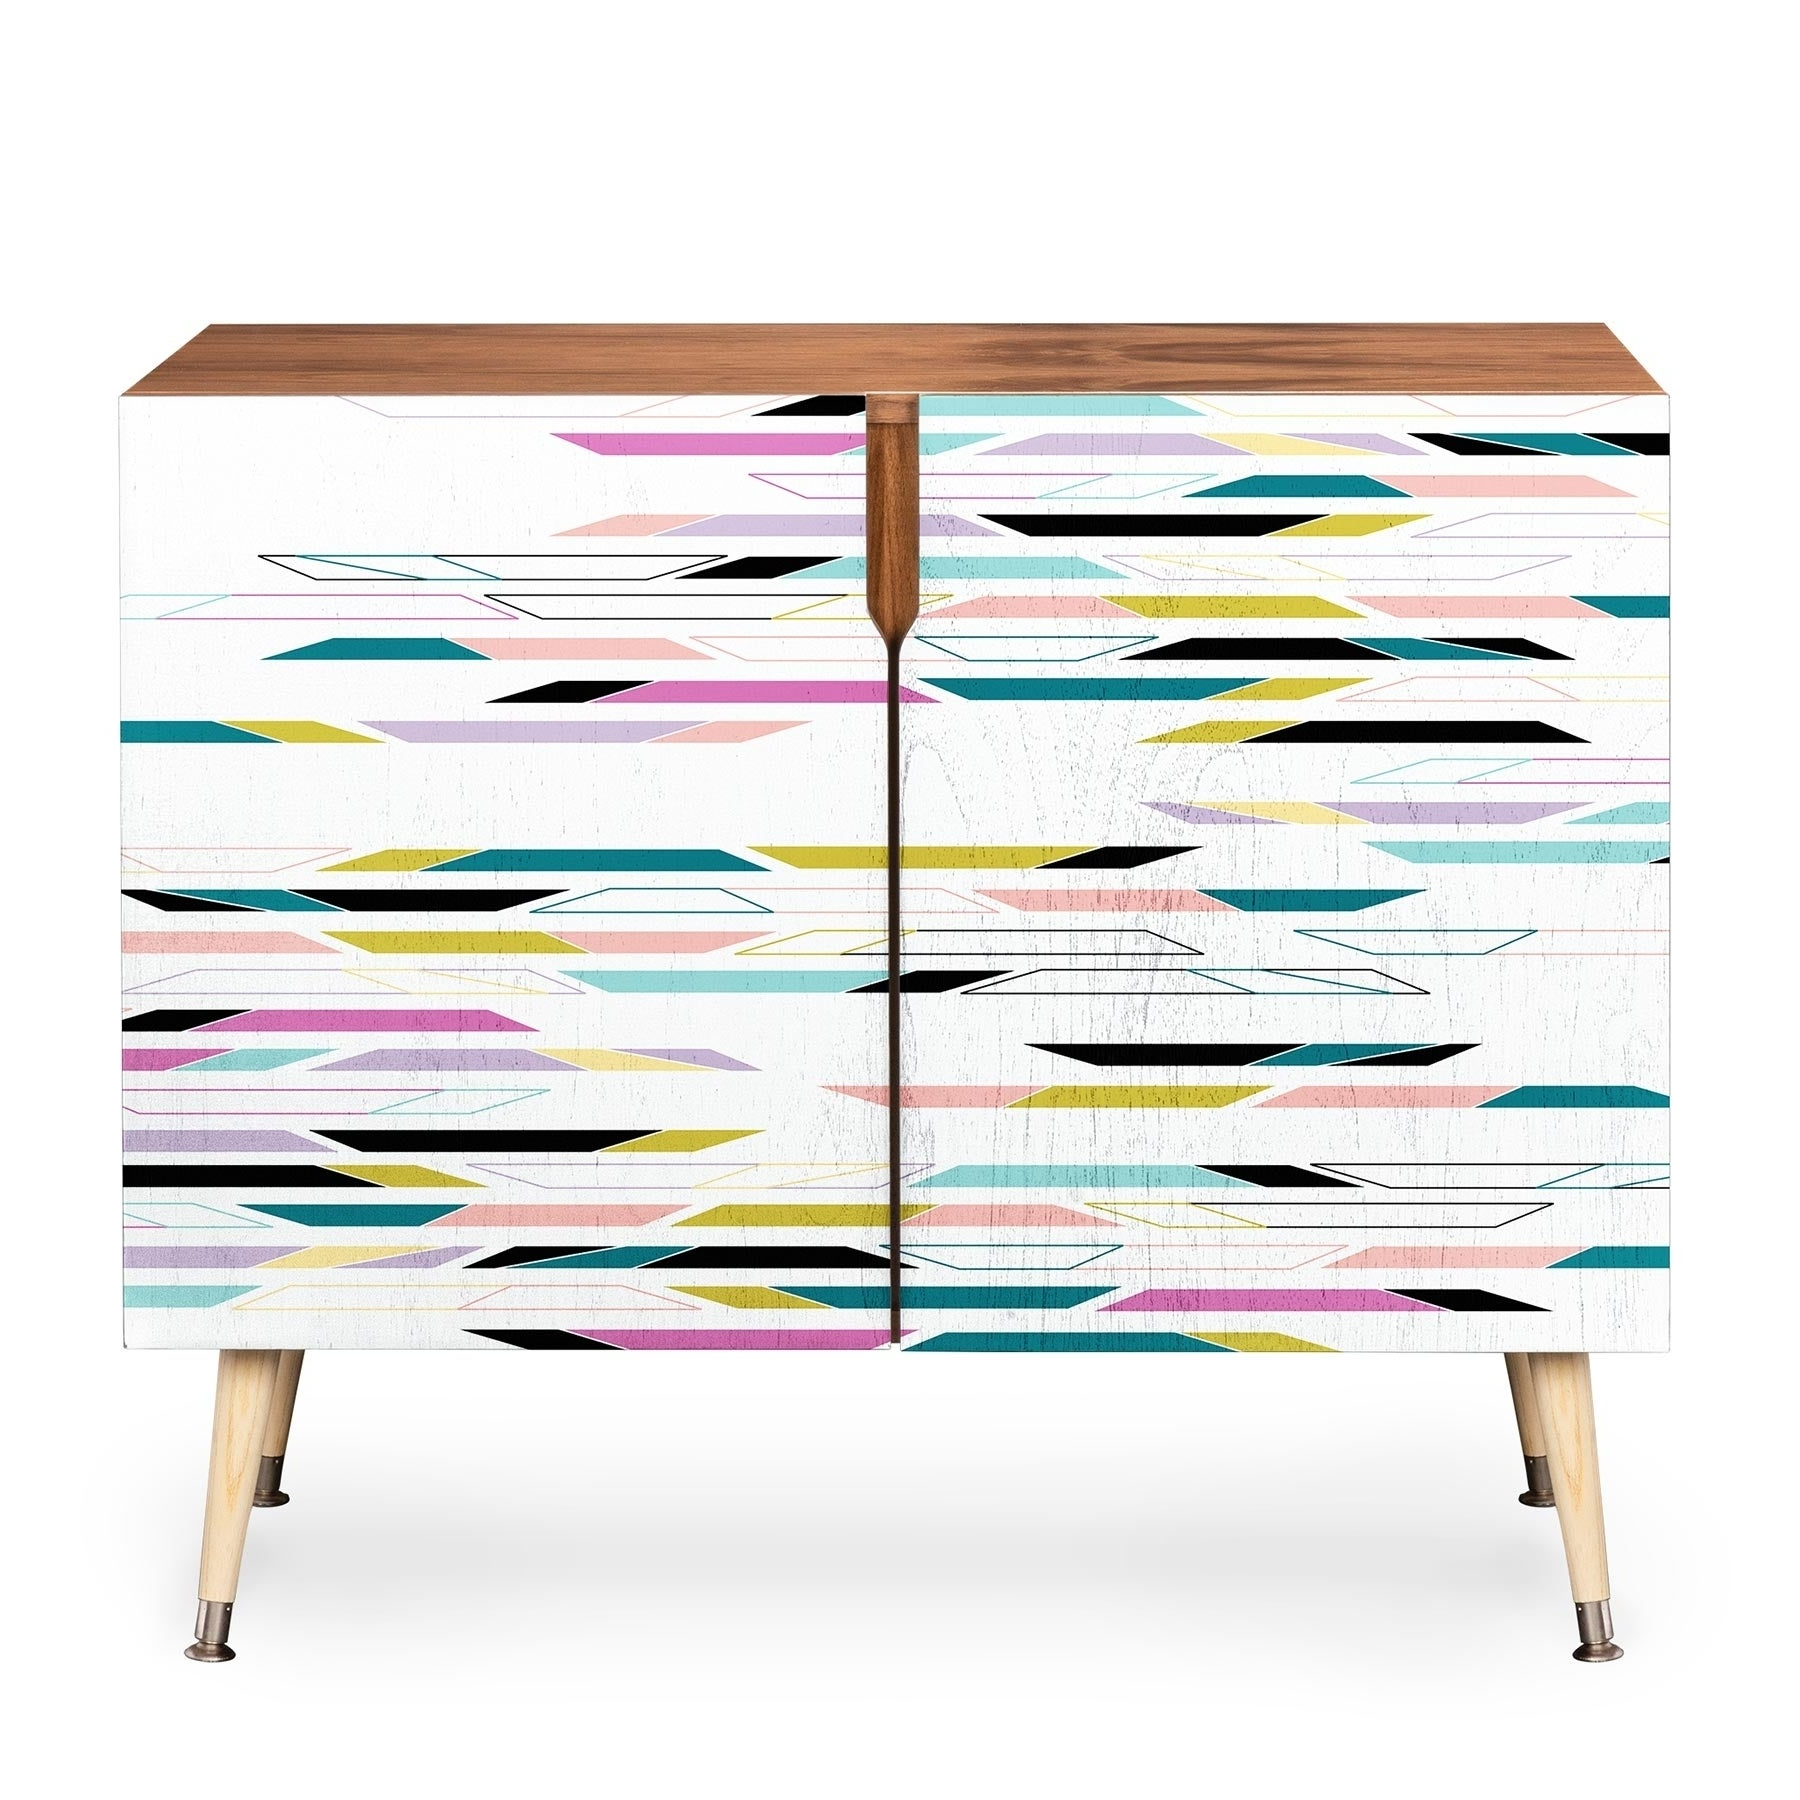 Deny Designs Multi Colored Geometric Shapes Credenza (Birch Or Walnut, 3  Leg Options) For Multi Colored Geometric Shapes Credenzas (View 4 of 20)